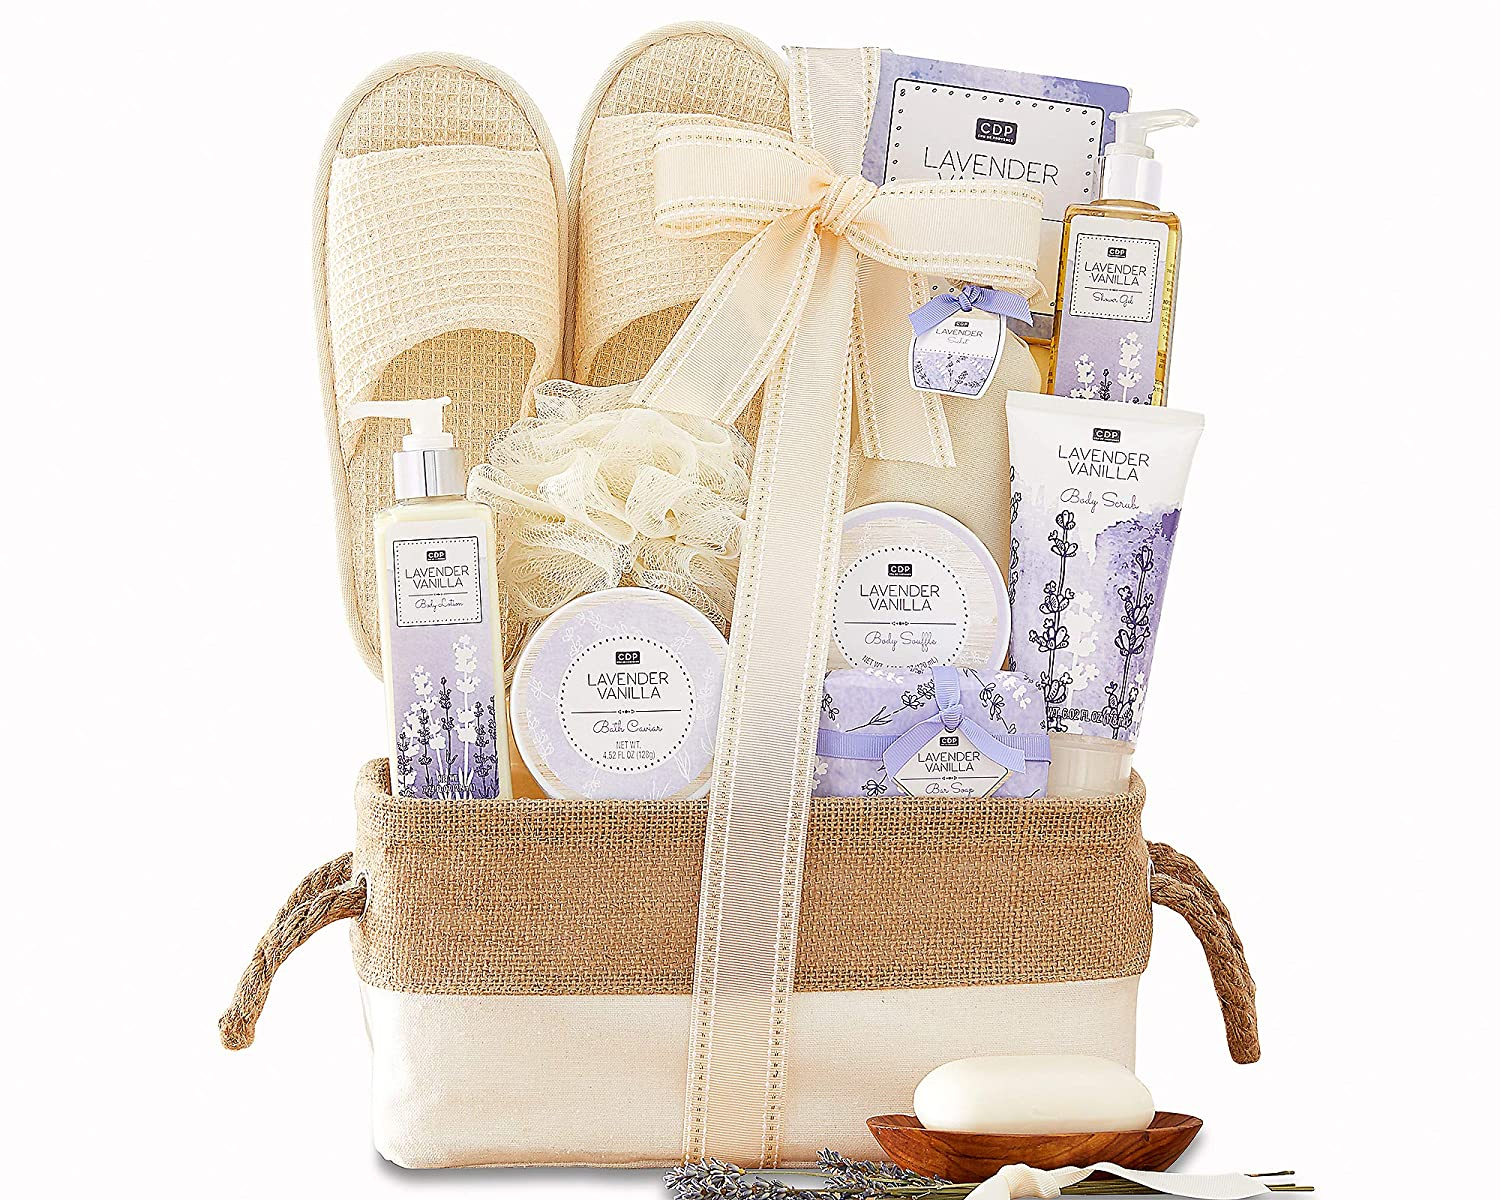 B00013C2YS Spa Gift Basket For Women - A Day Off Spa Gift For Her Men Lavender Vanilla Scented Spa Gift Baskets Bath & Body Gift Set Lovely Lined Basket Slippers and more by Wine Country Gift Baskets 912B9qqPITEL